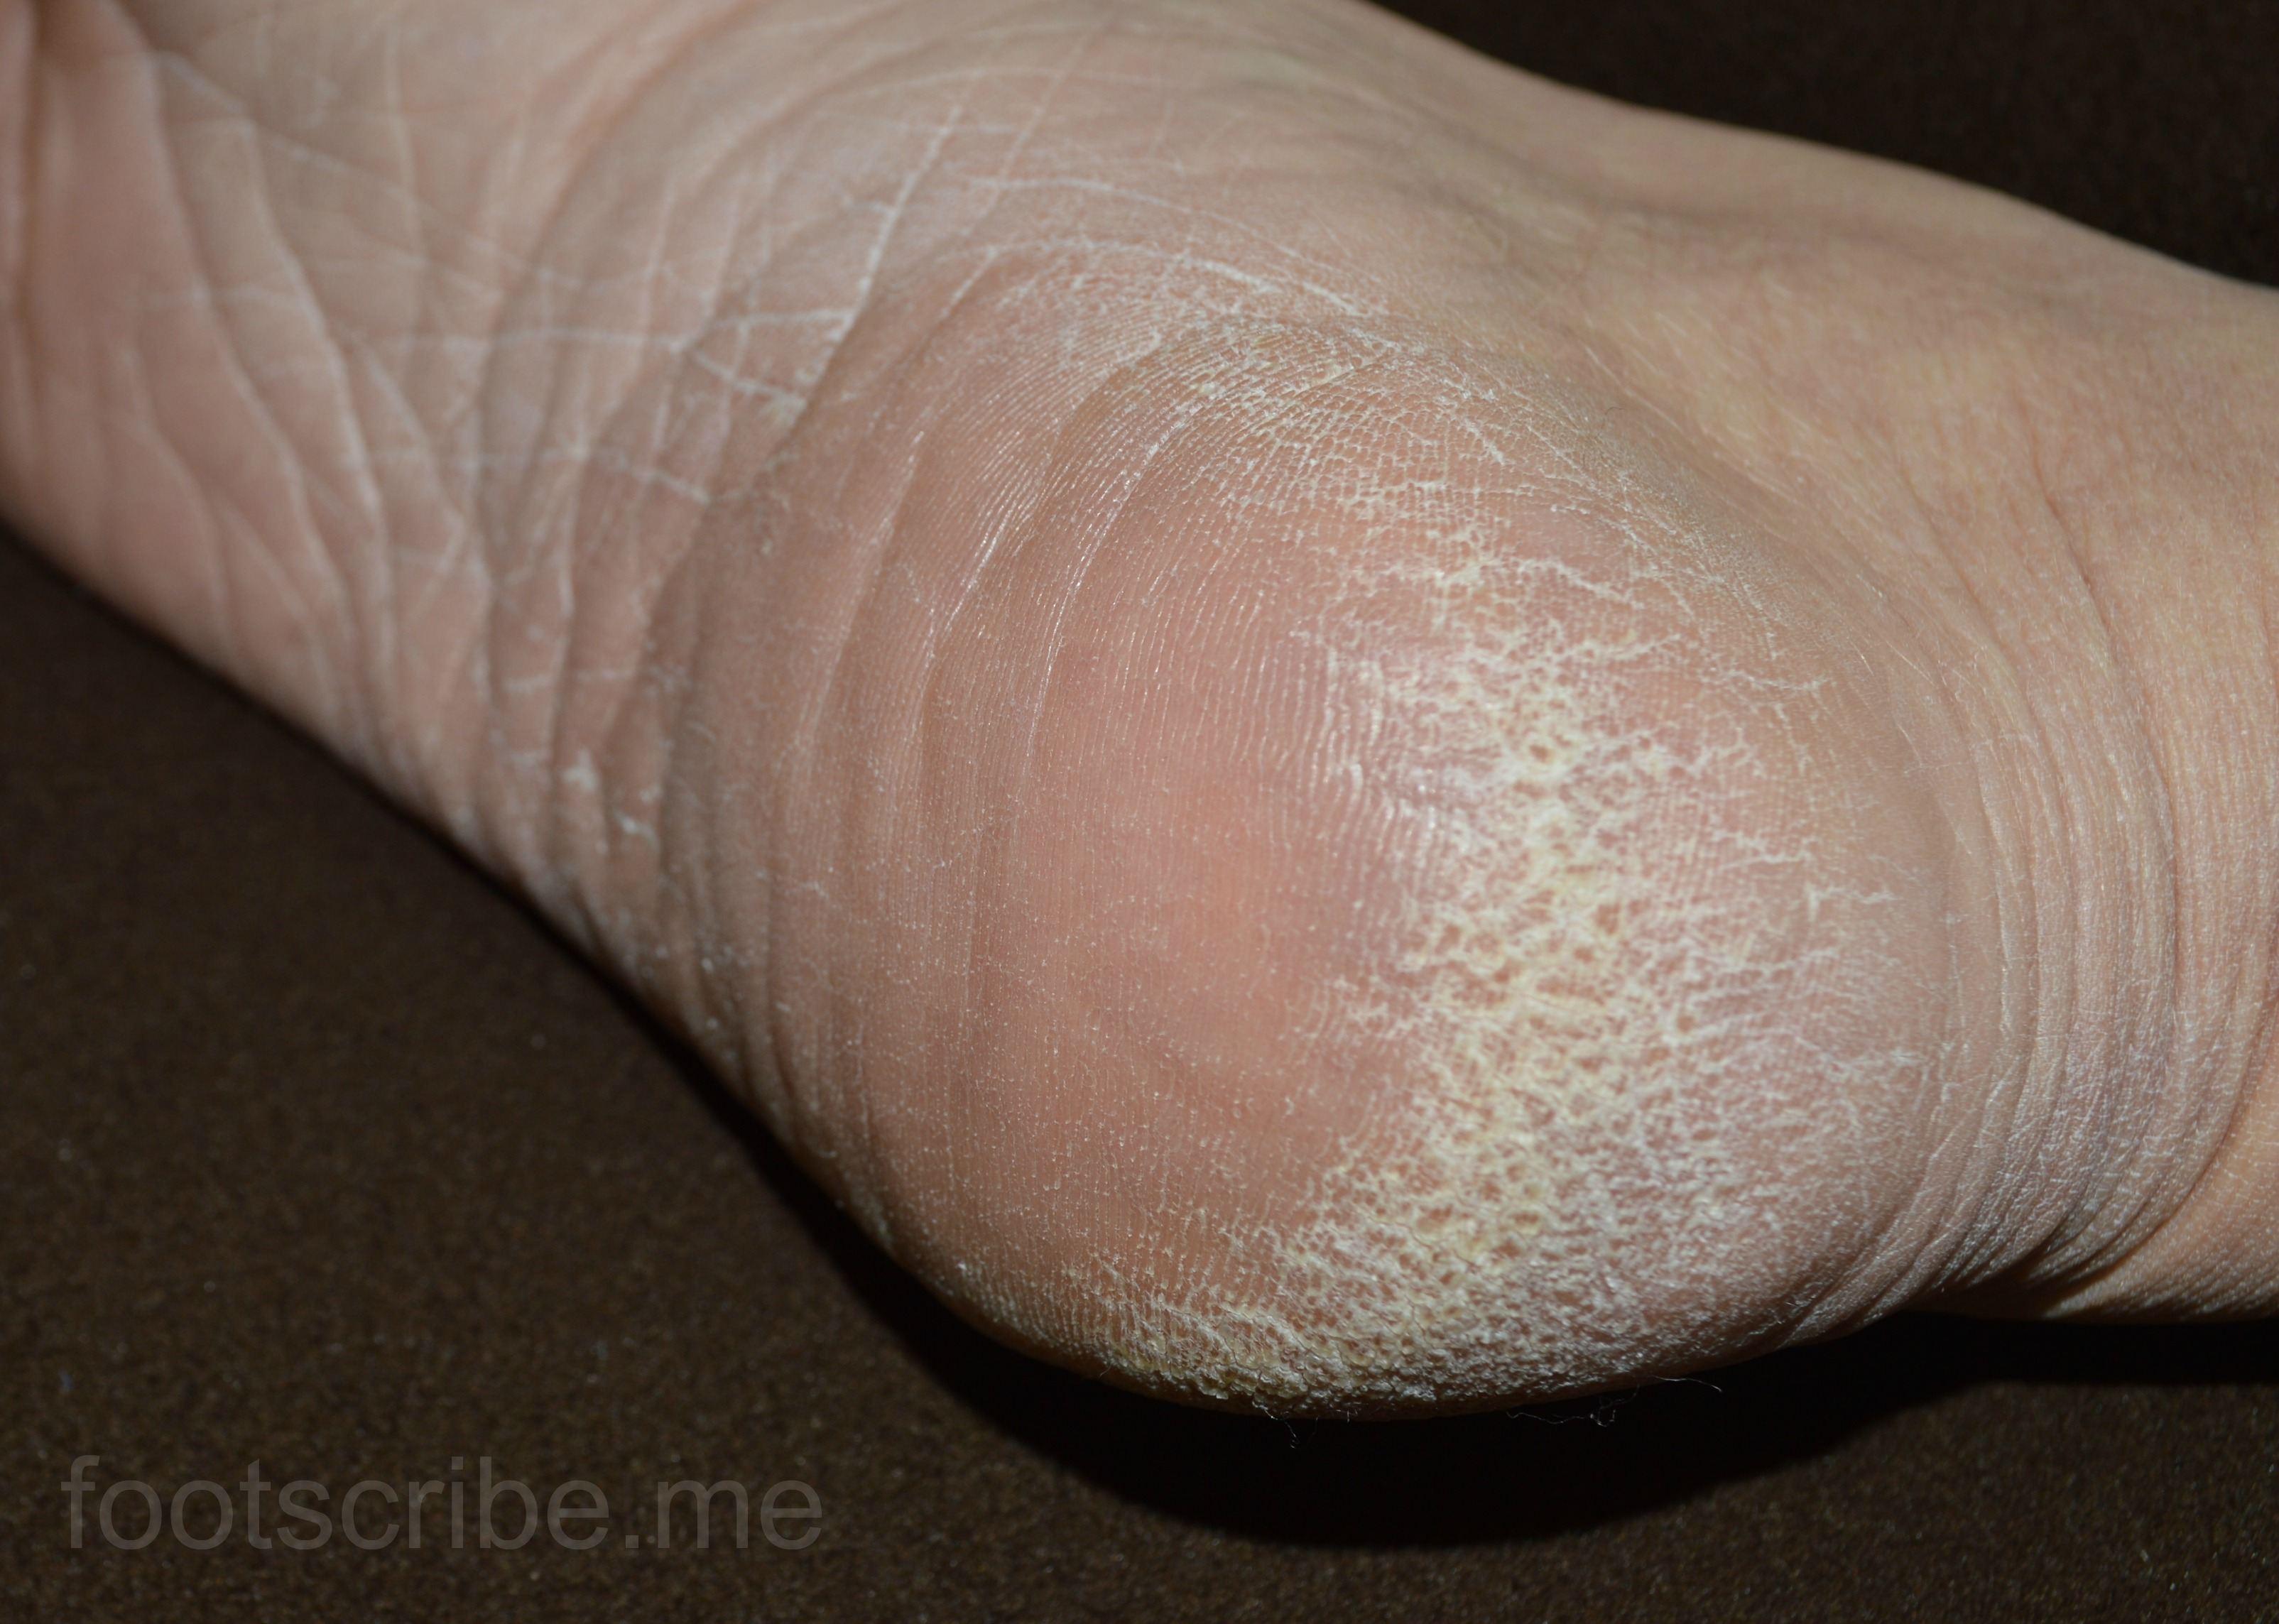 How to Quickly Heal Cracked Feet: Treatment and